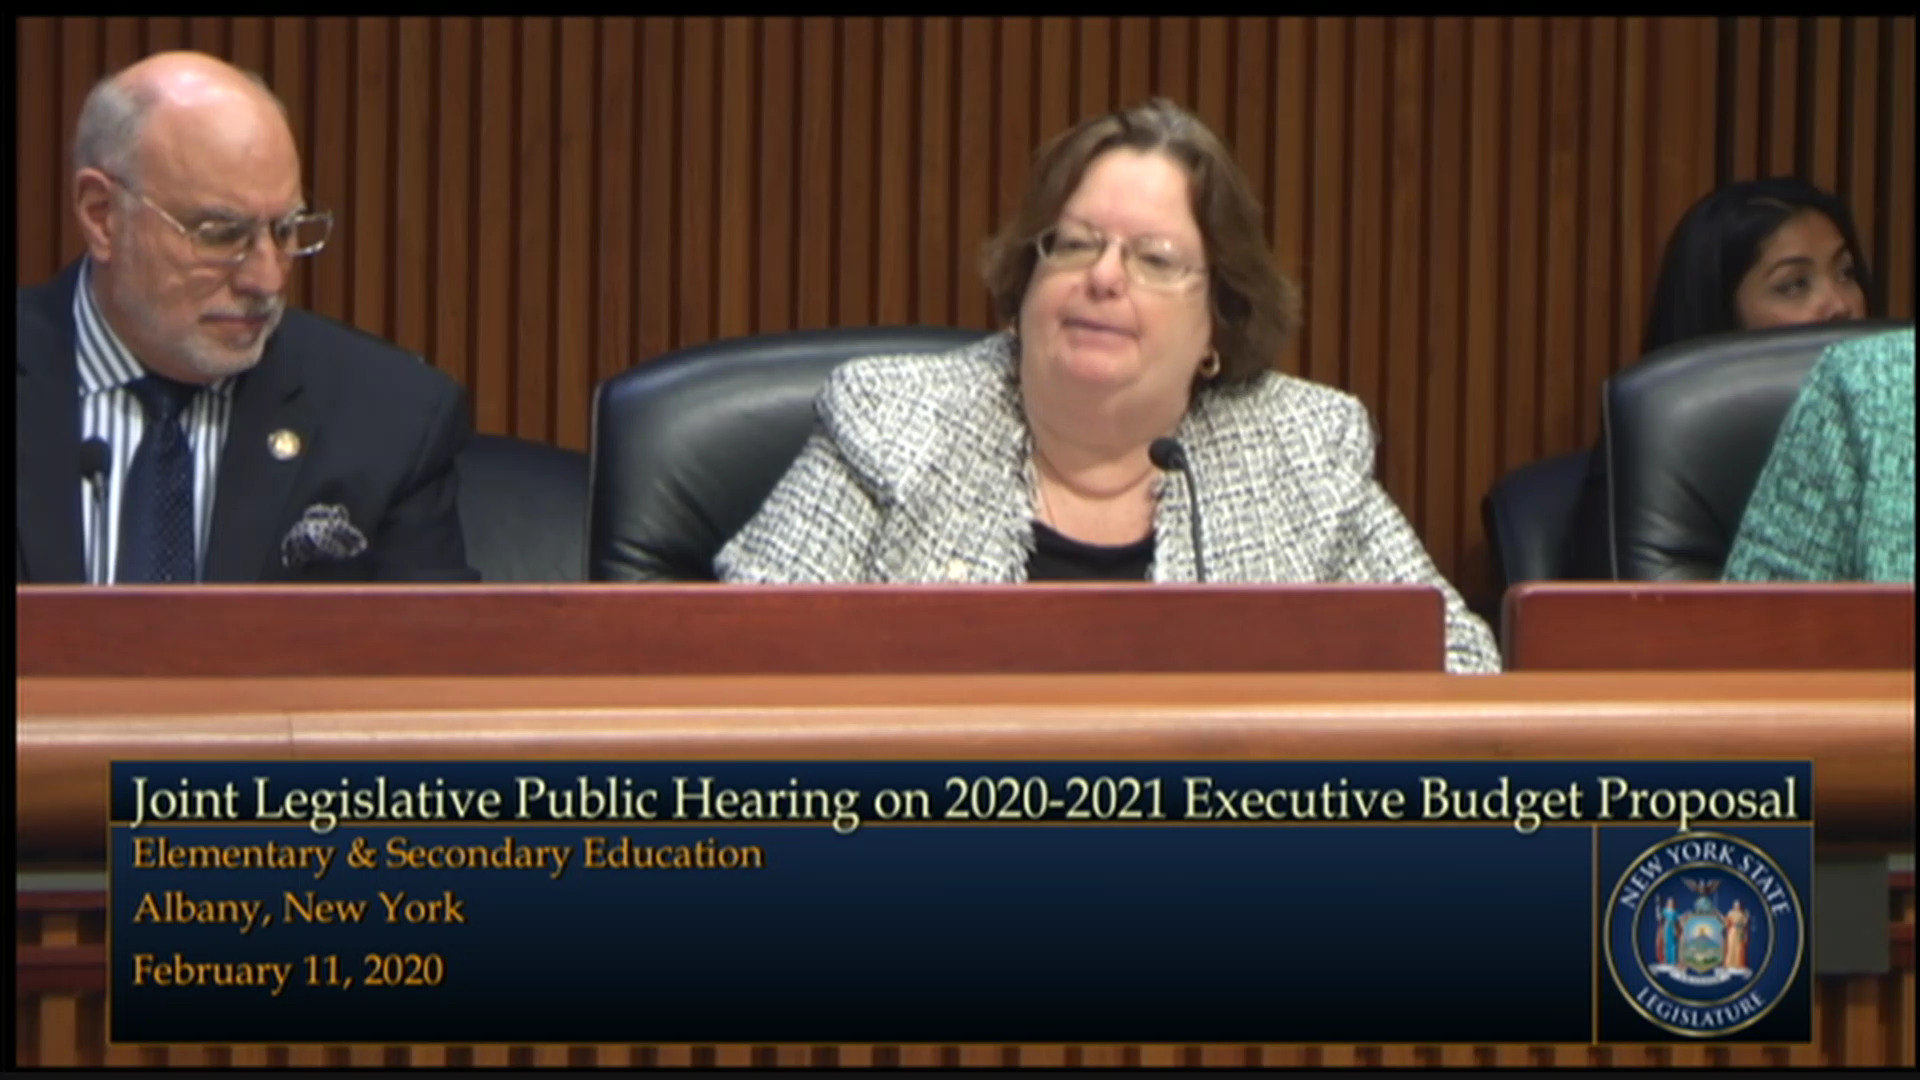 Education Commissioner Testifies During Budget Hearing on Elementary and Secondary Education